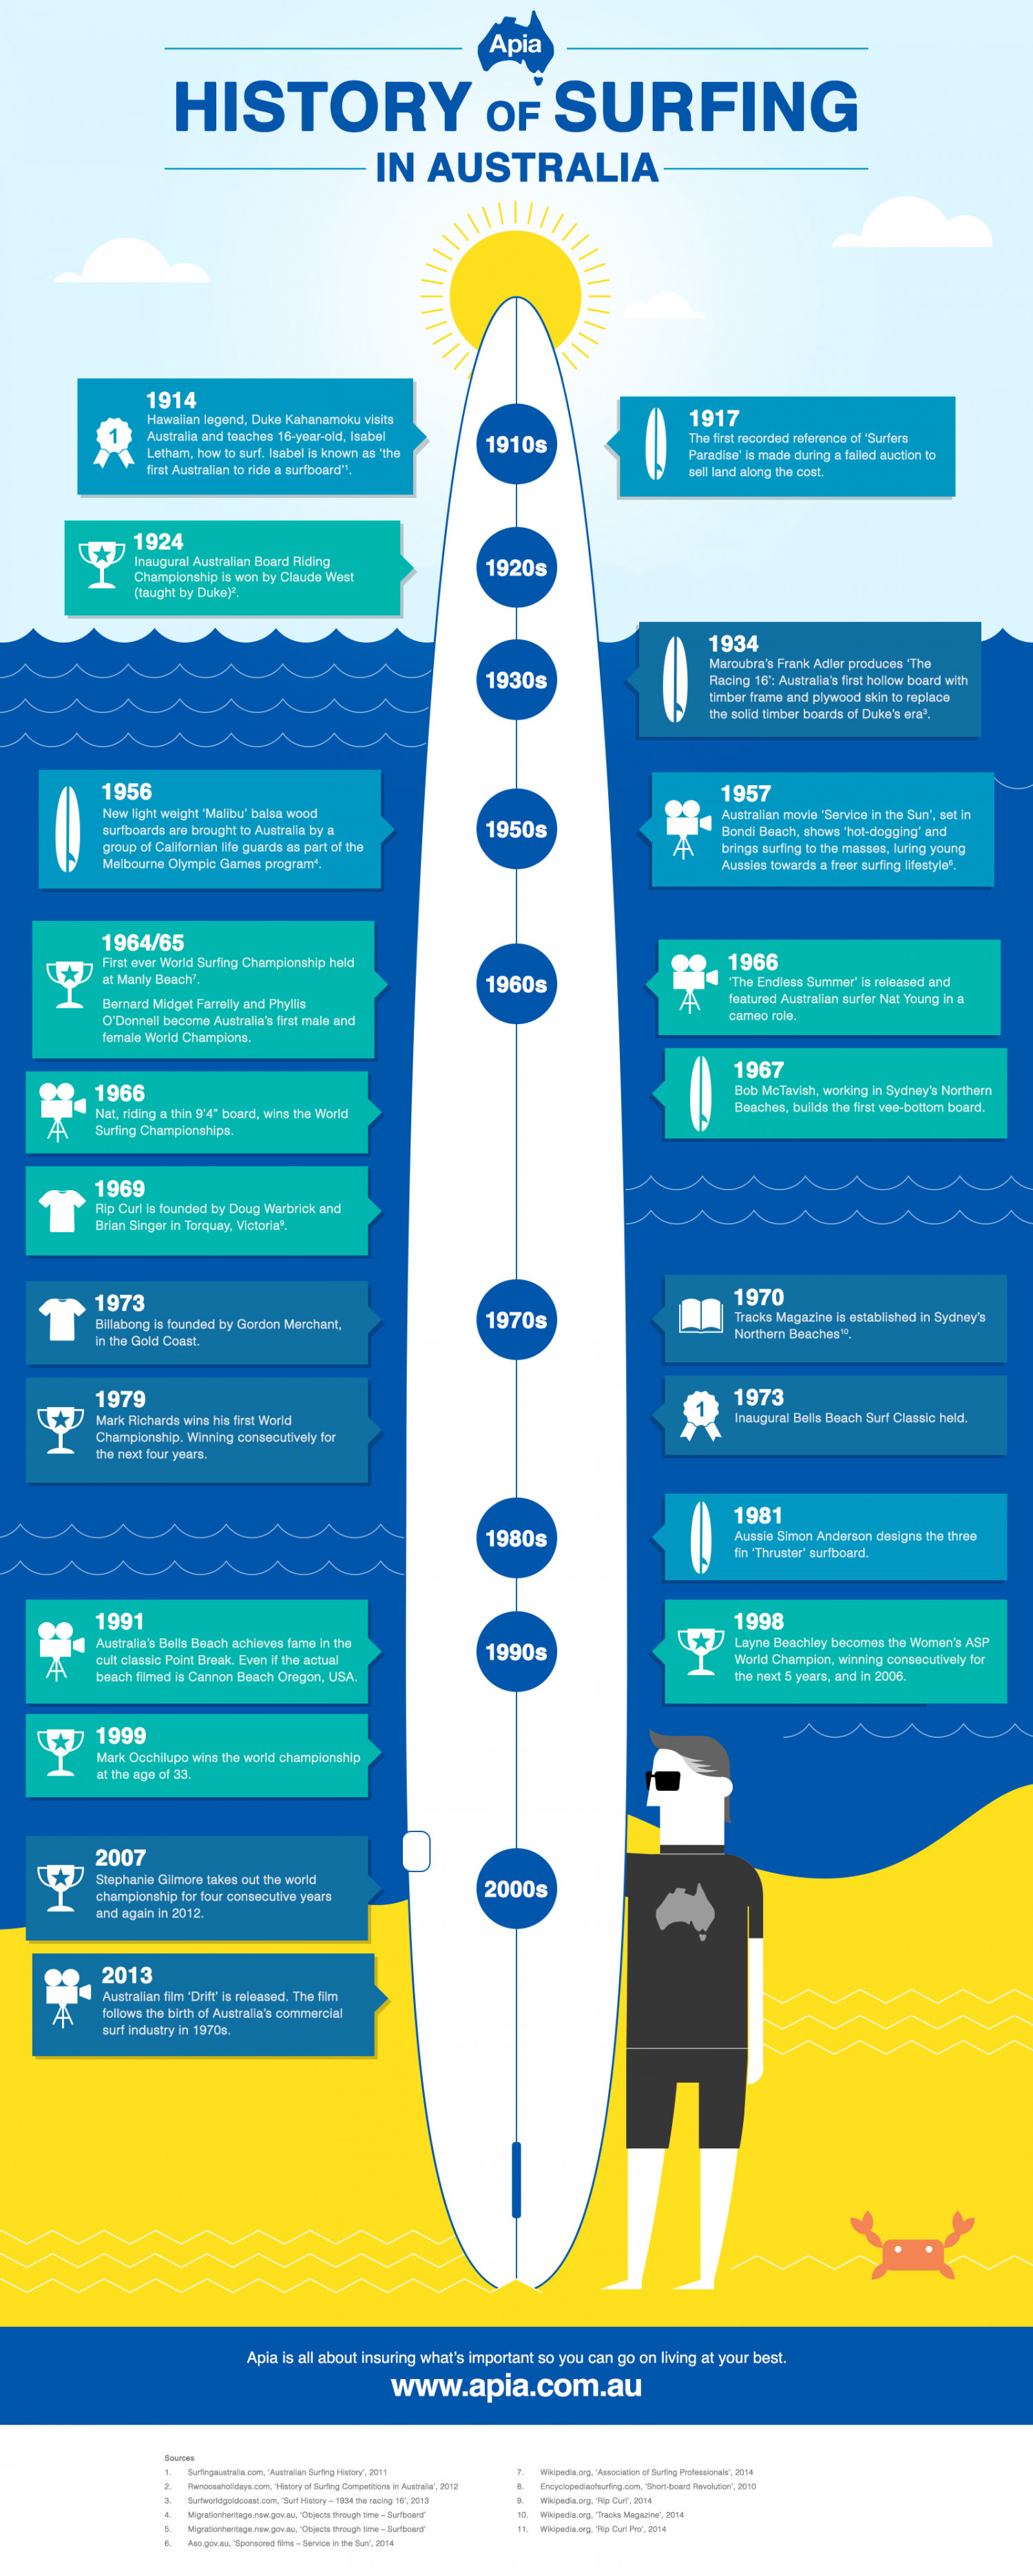 The History of Surfing in Australia Infographic